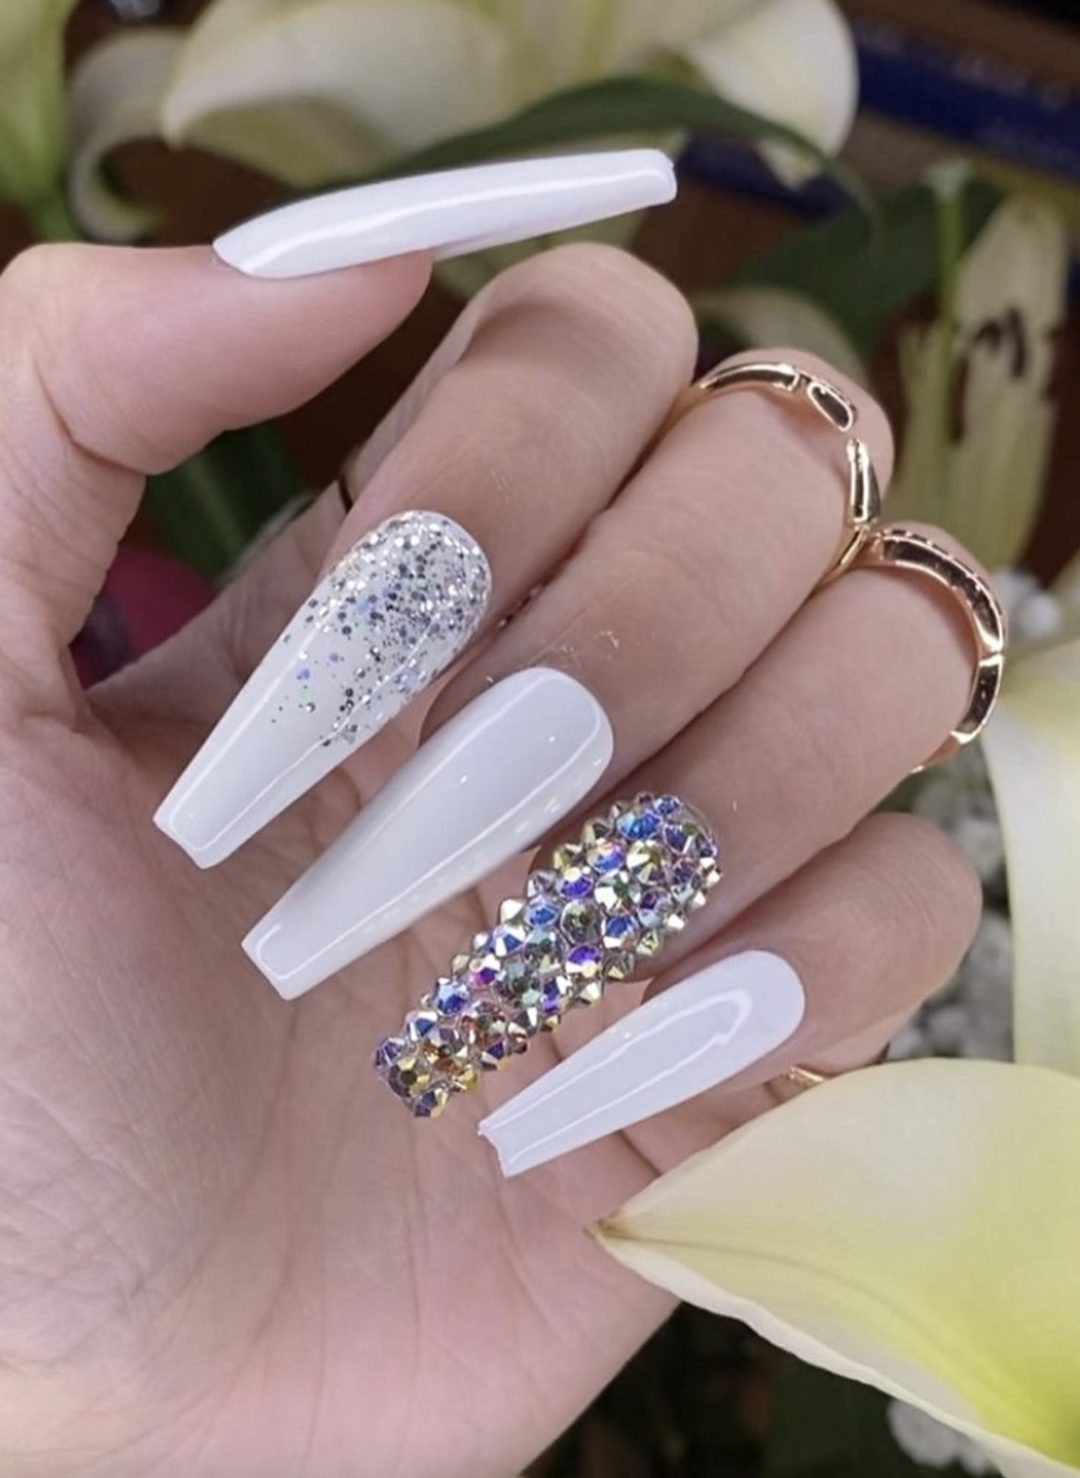 Long white coffin n ails with glitter and rhinestones